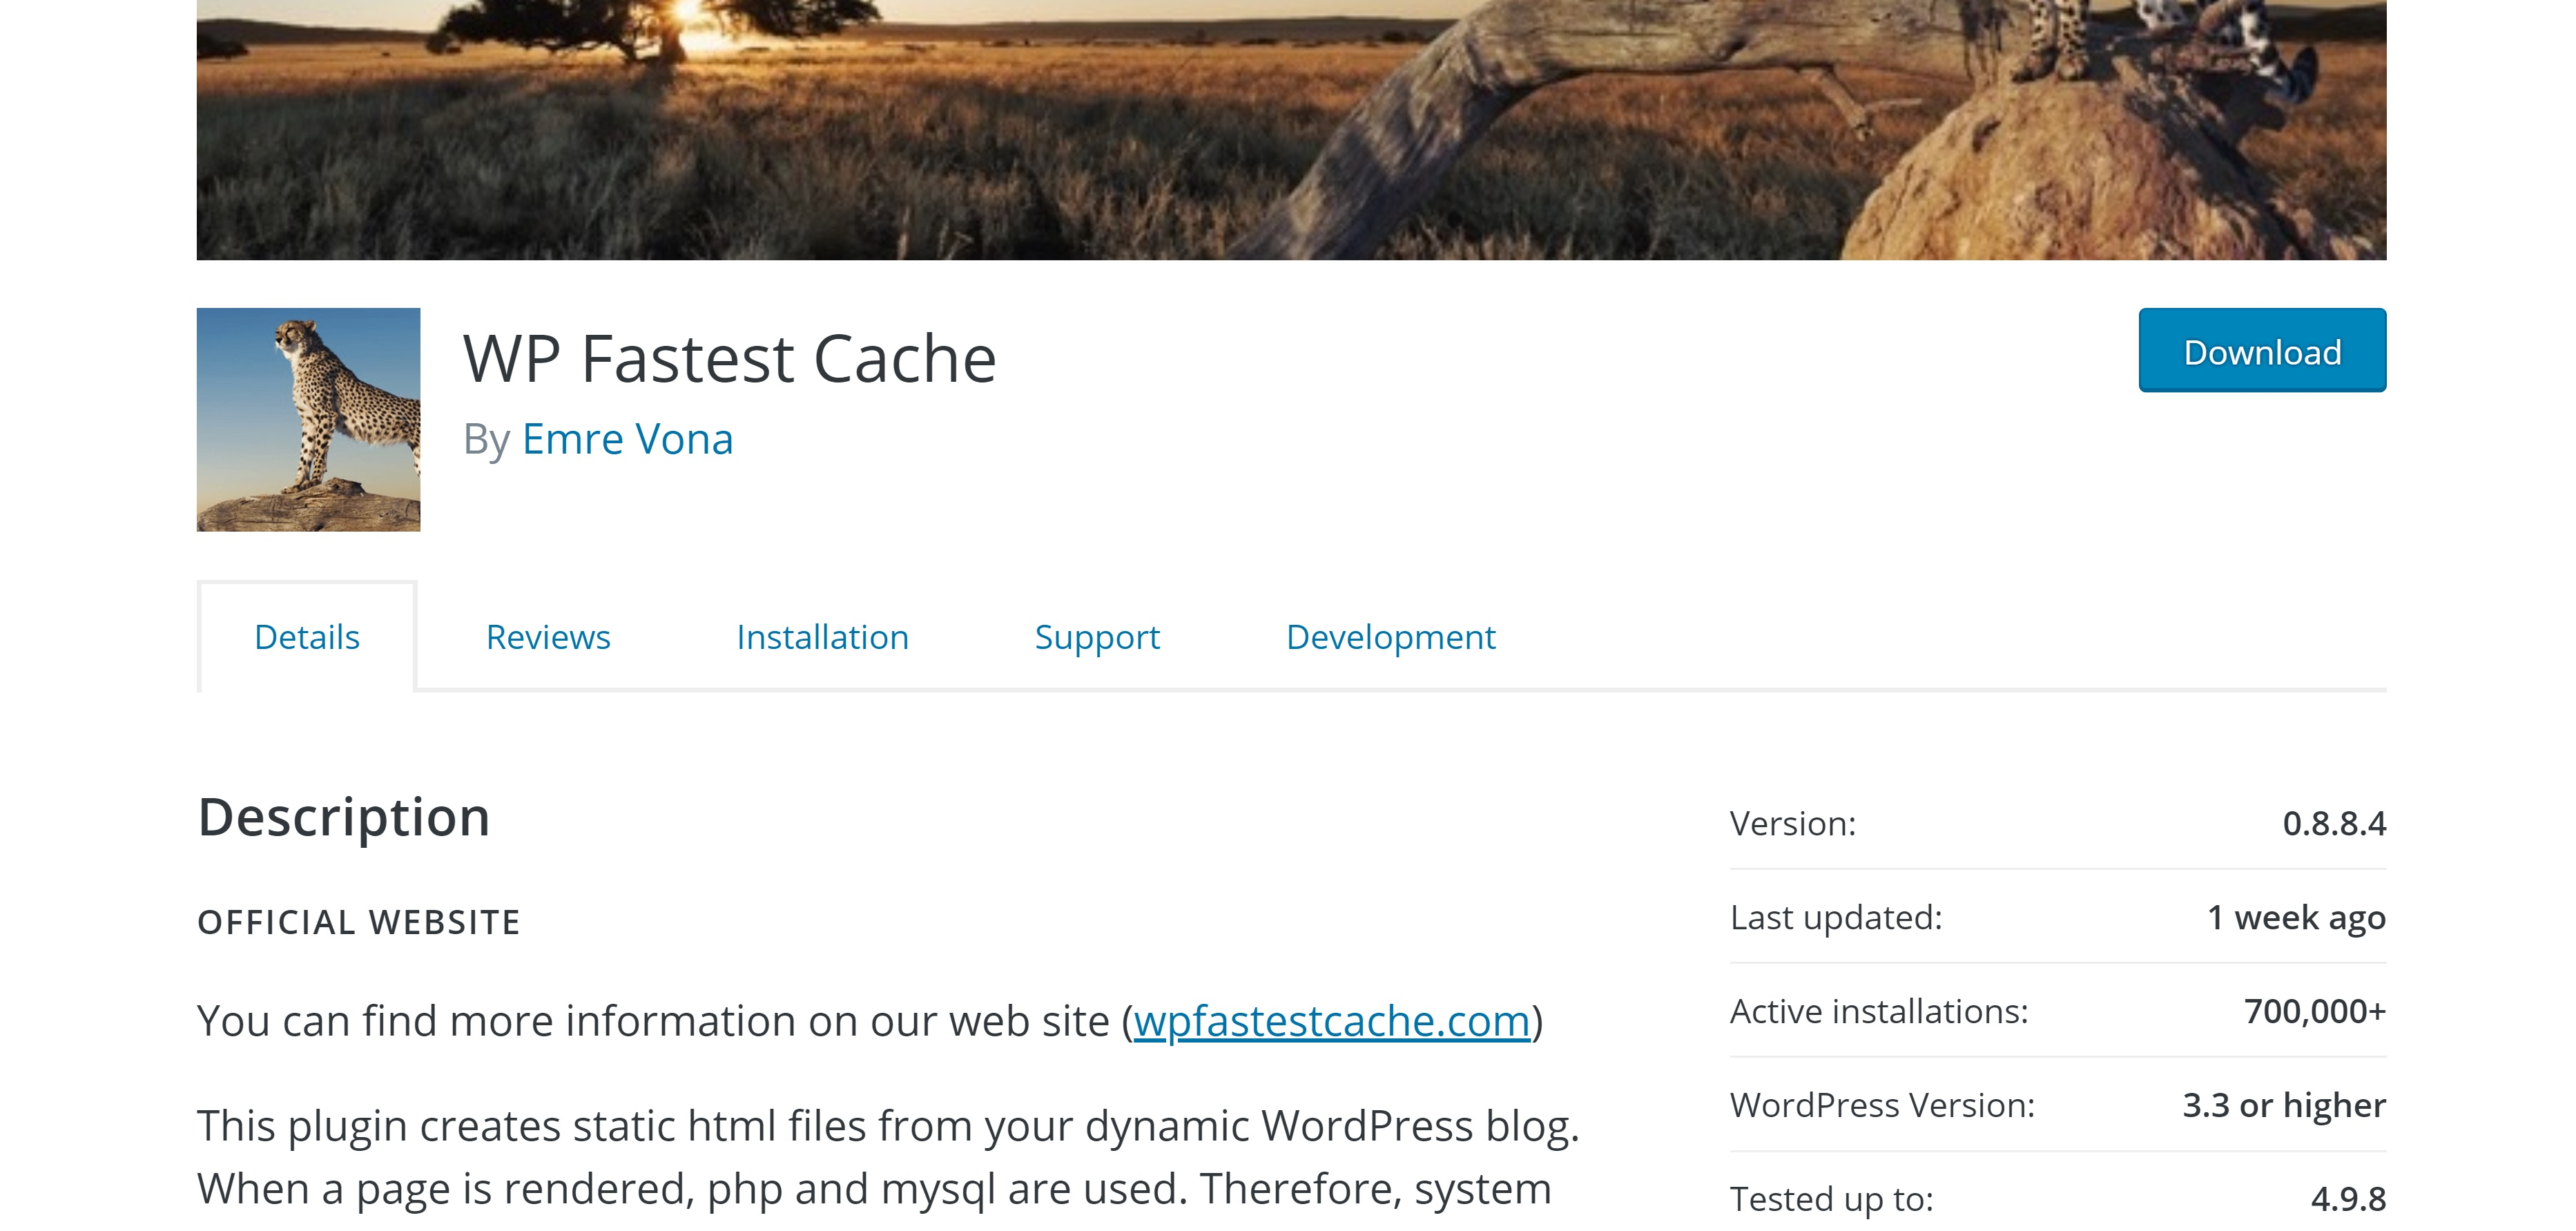 WP Fastest Cache speeds up your website